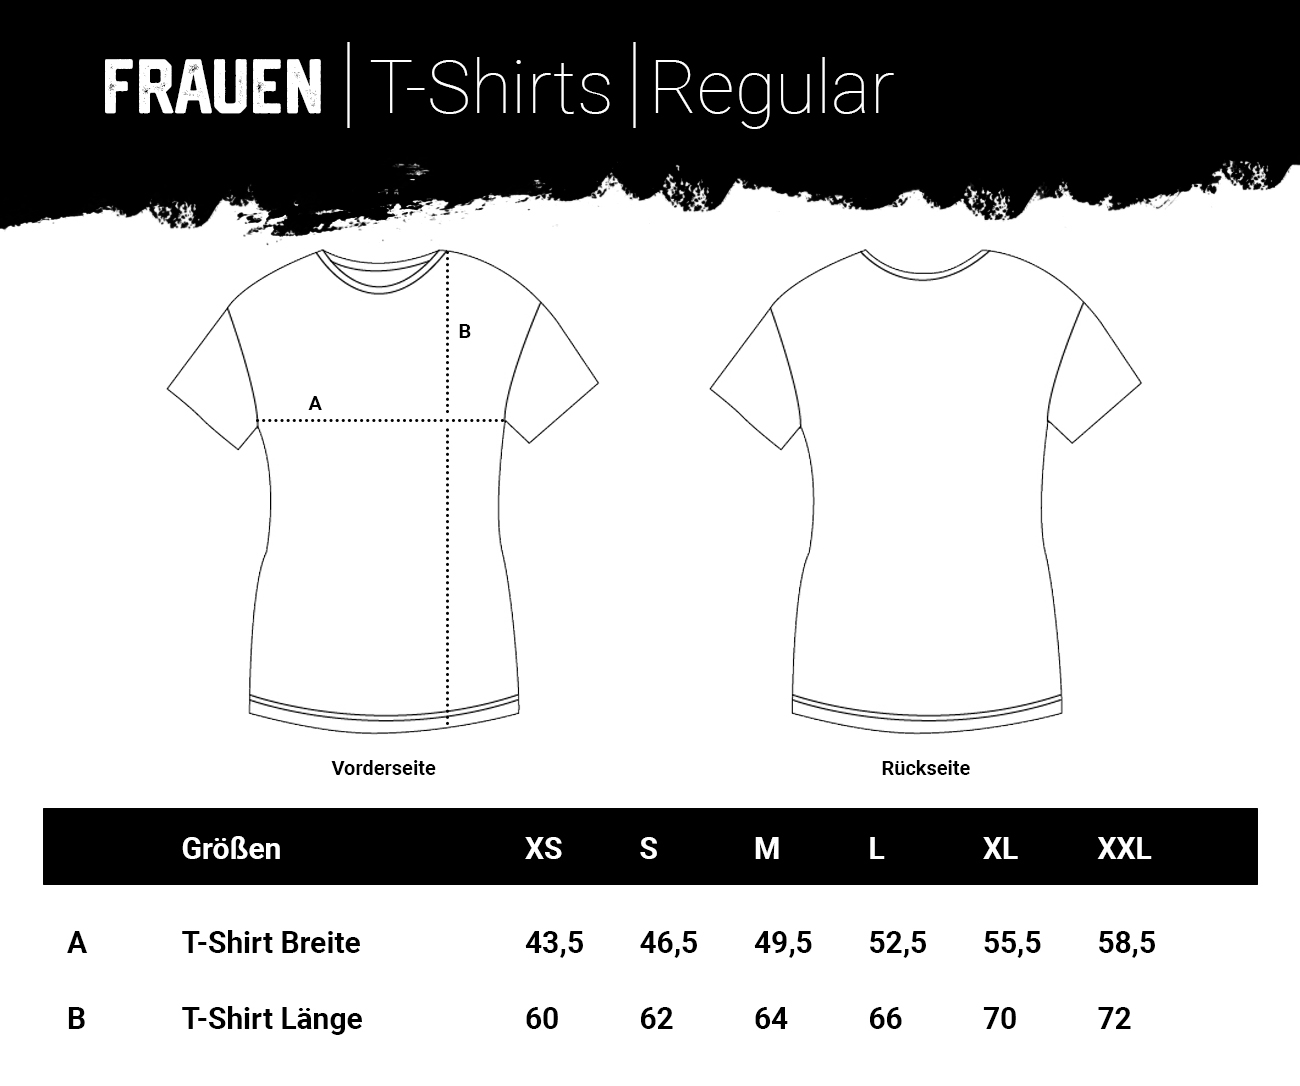 Frauen_T-Shirts_Regular.jpg